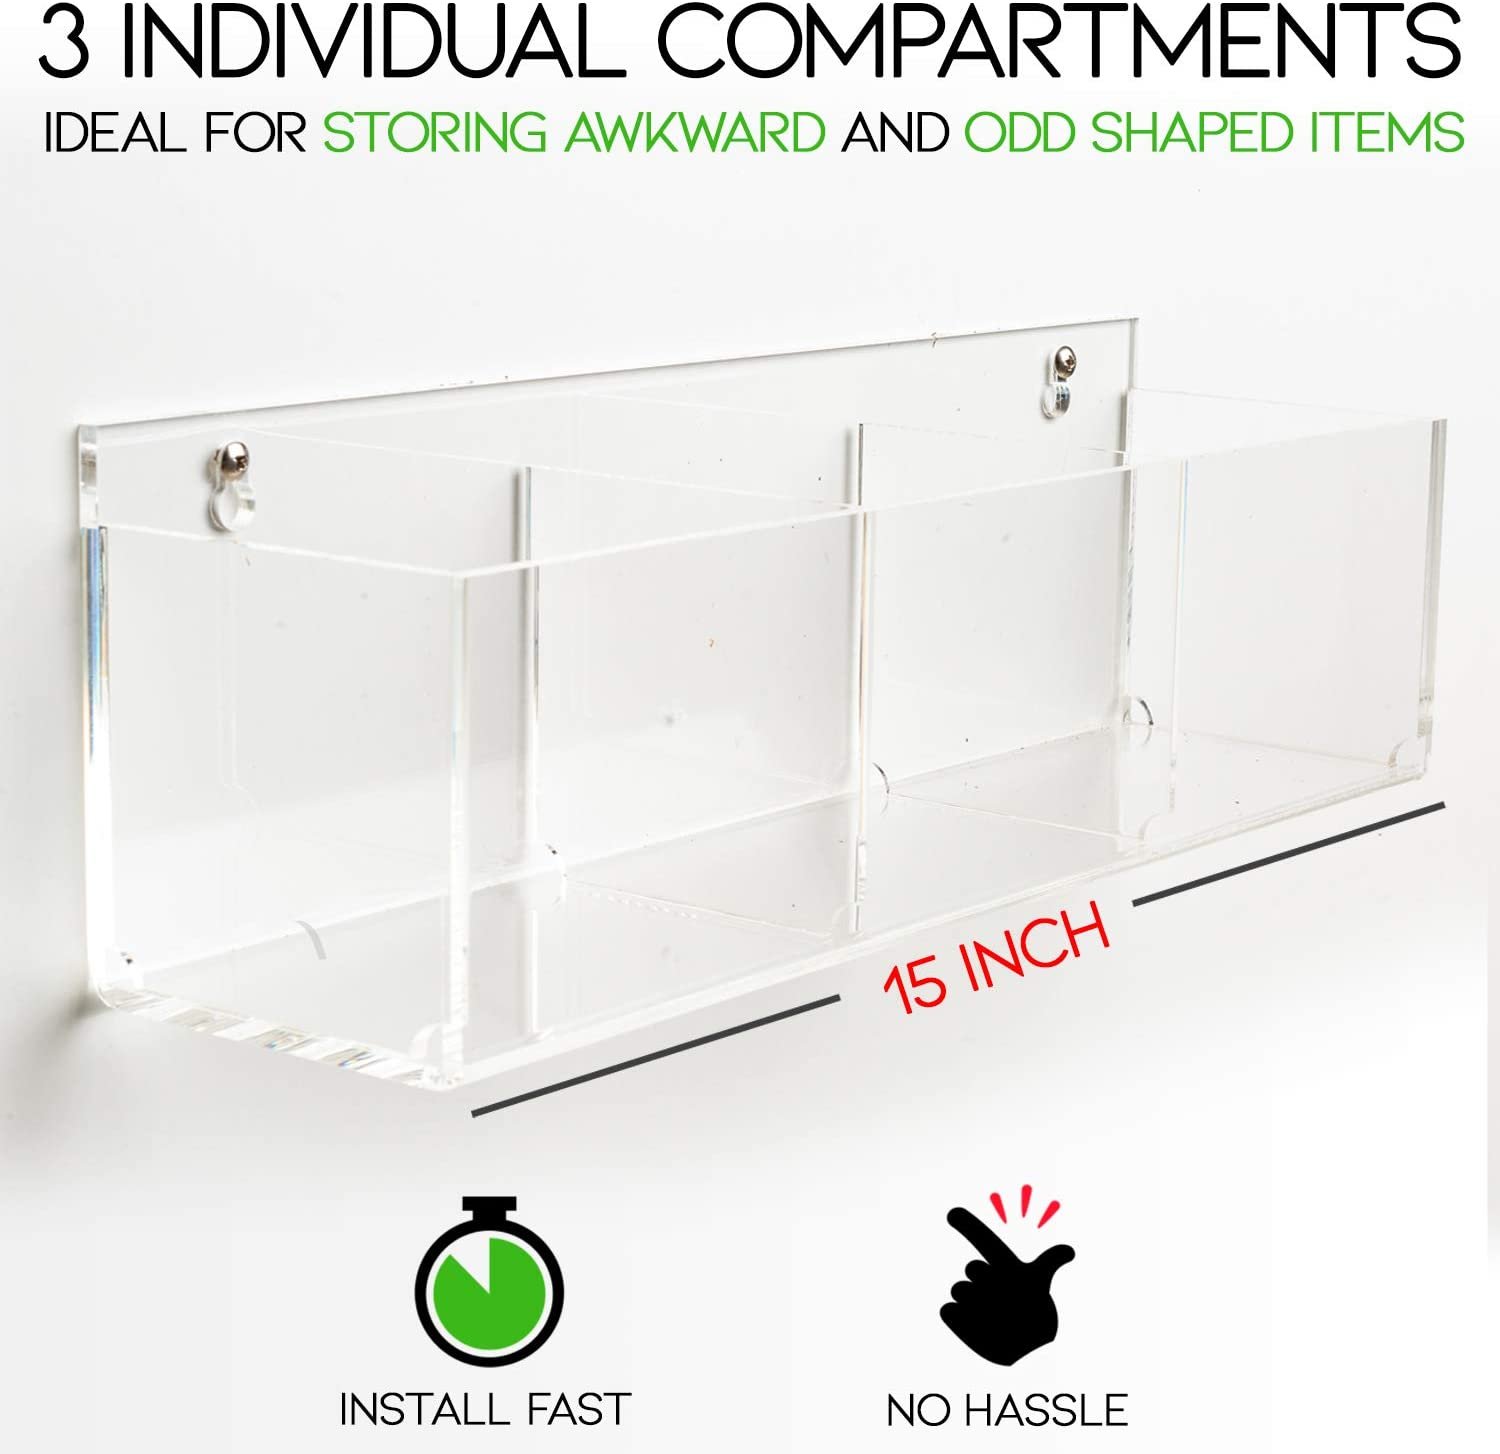 Invisible Bathroom Organizer Wall Mounted Or Free Standing Luxury Bathroom Decor 15 Clear Acrylic Bathroom Shelf With 3 Sections For Toiletries Makeup Toothbrushes Over The Toilet Storage Pretty Display Making Your